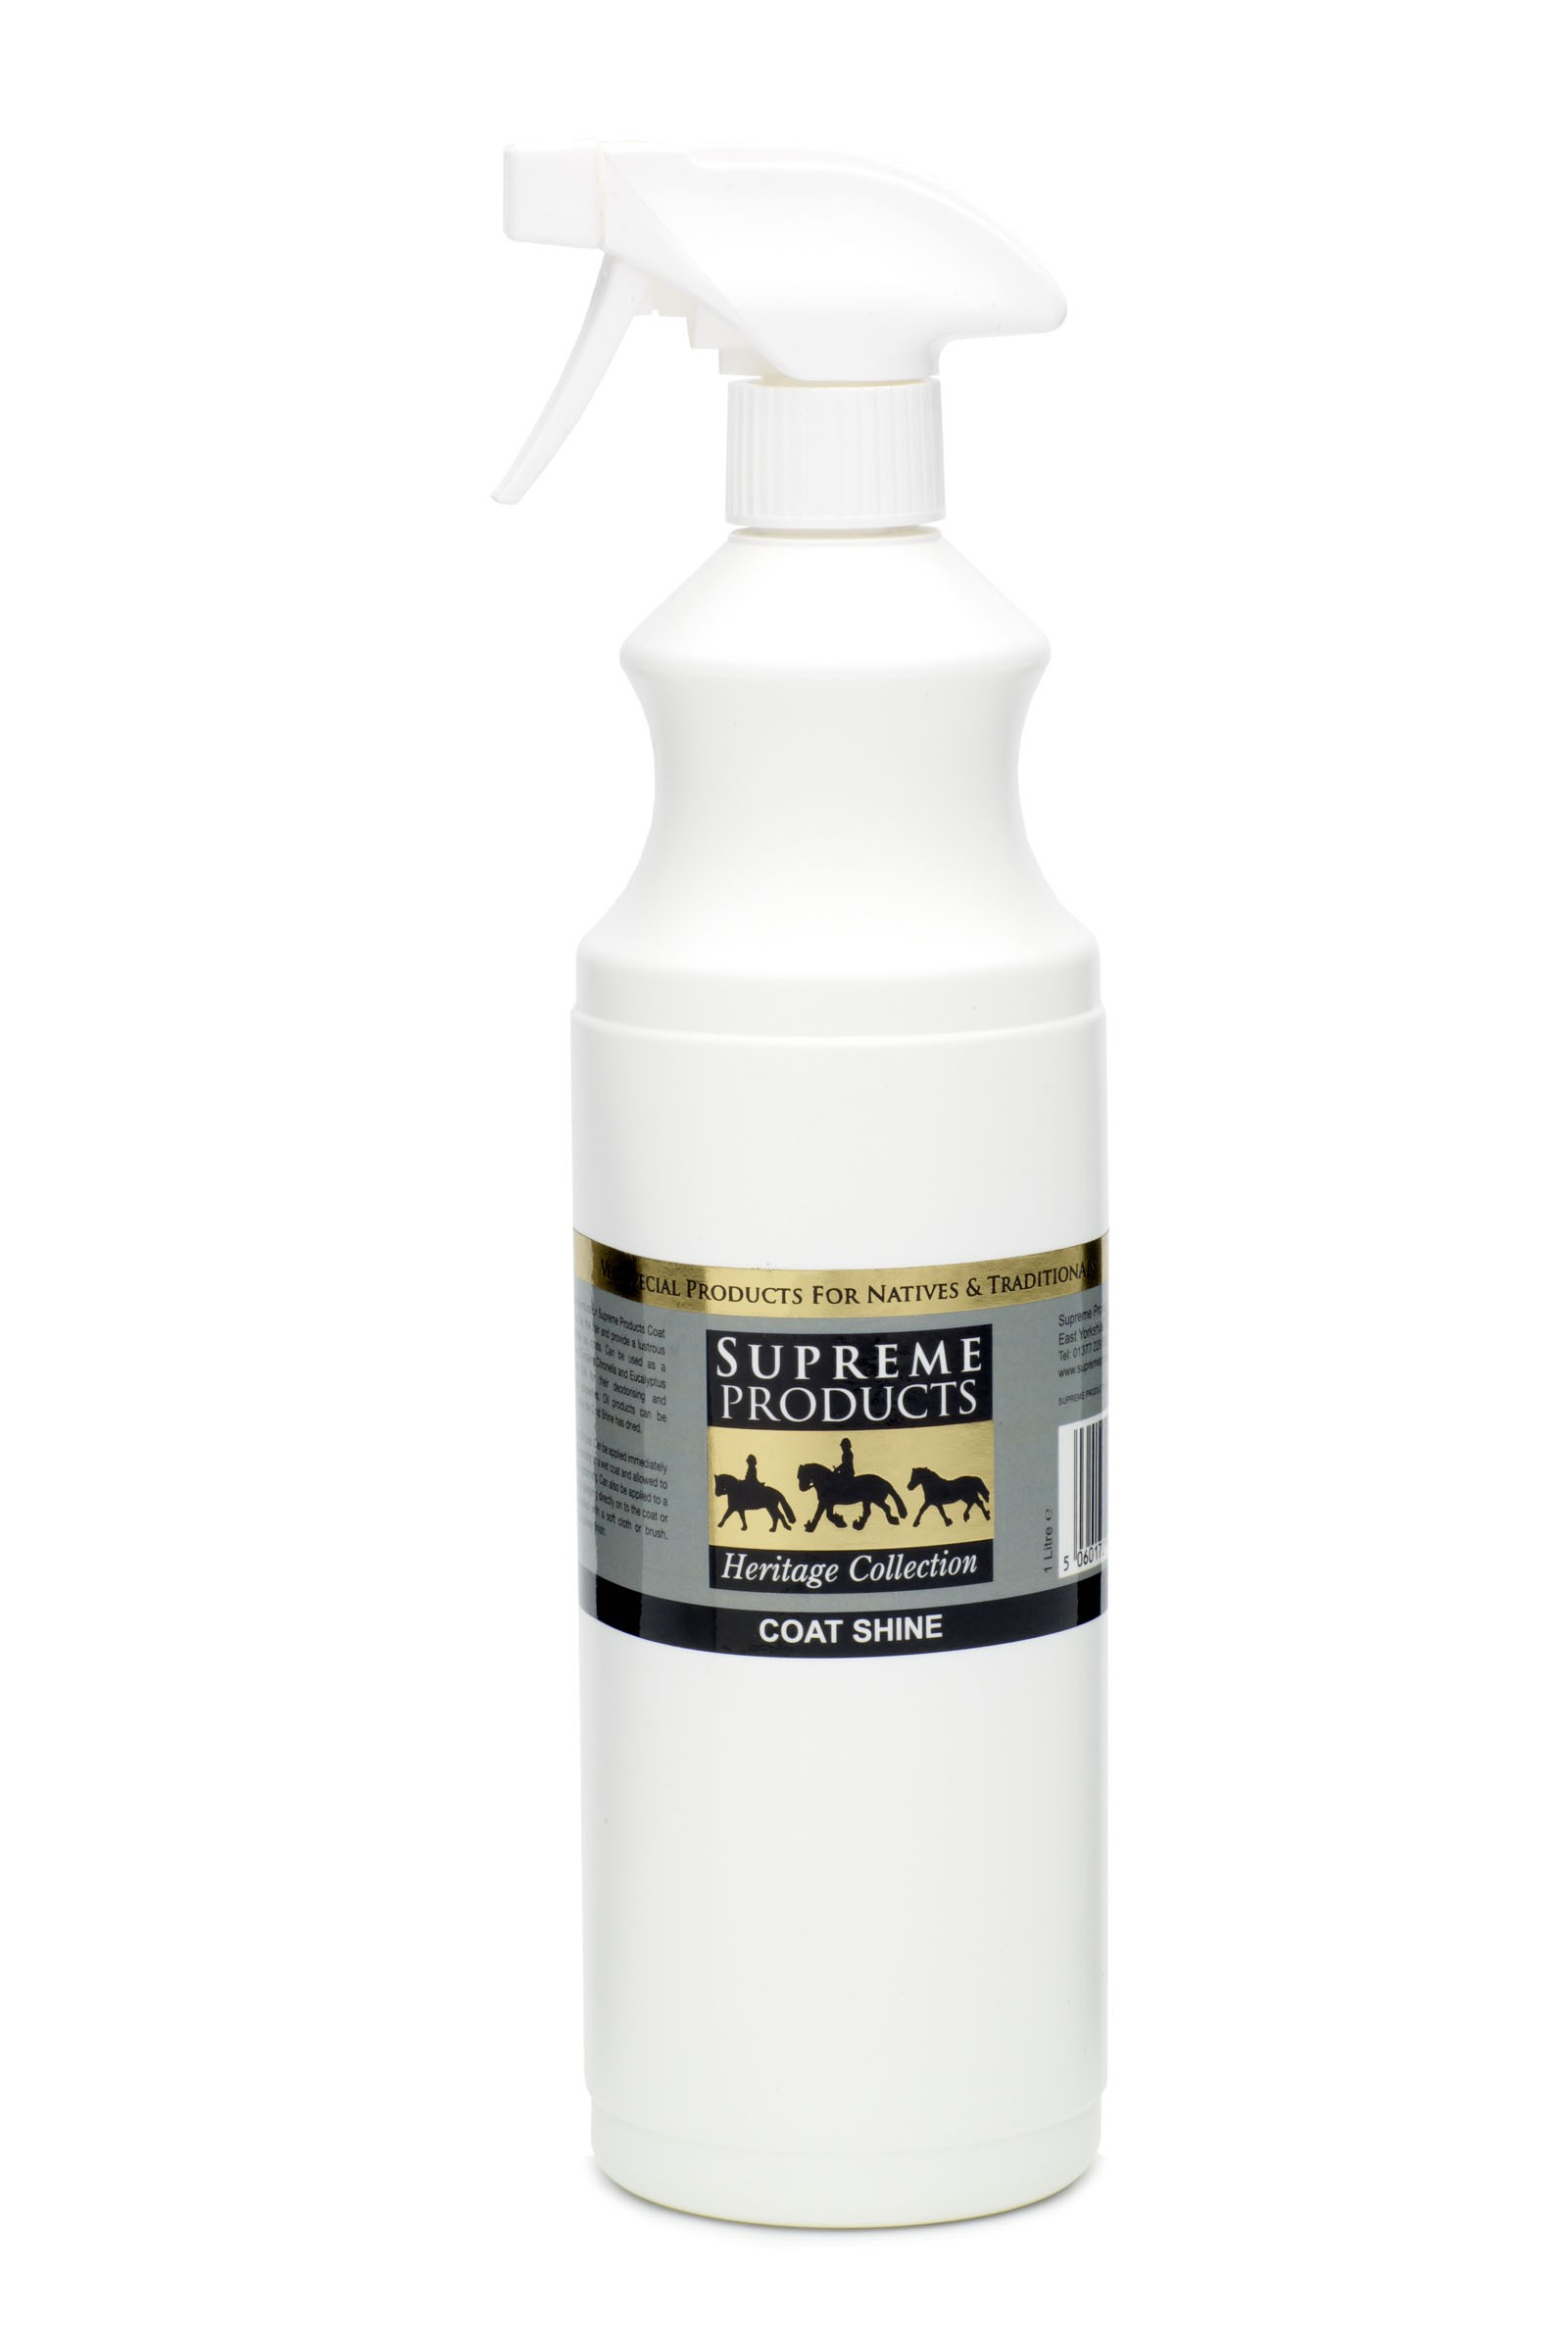 Supreme Products Heritage Collection Coat Shine  - Thomas Irving's equestrian and accessories store  Supreme Products Heritage Collection Coat Shine